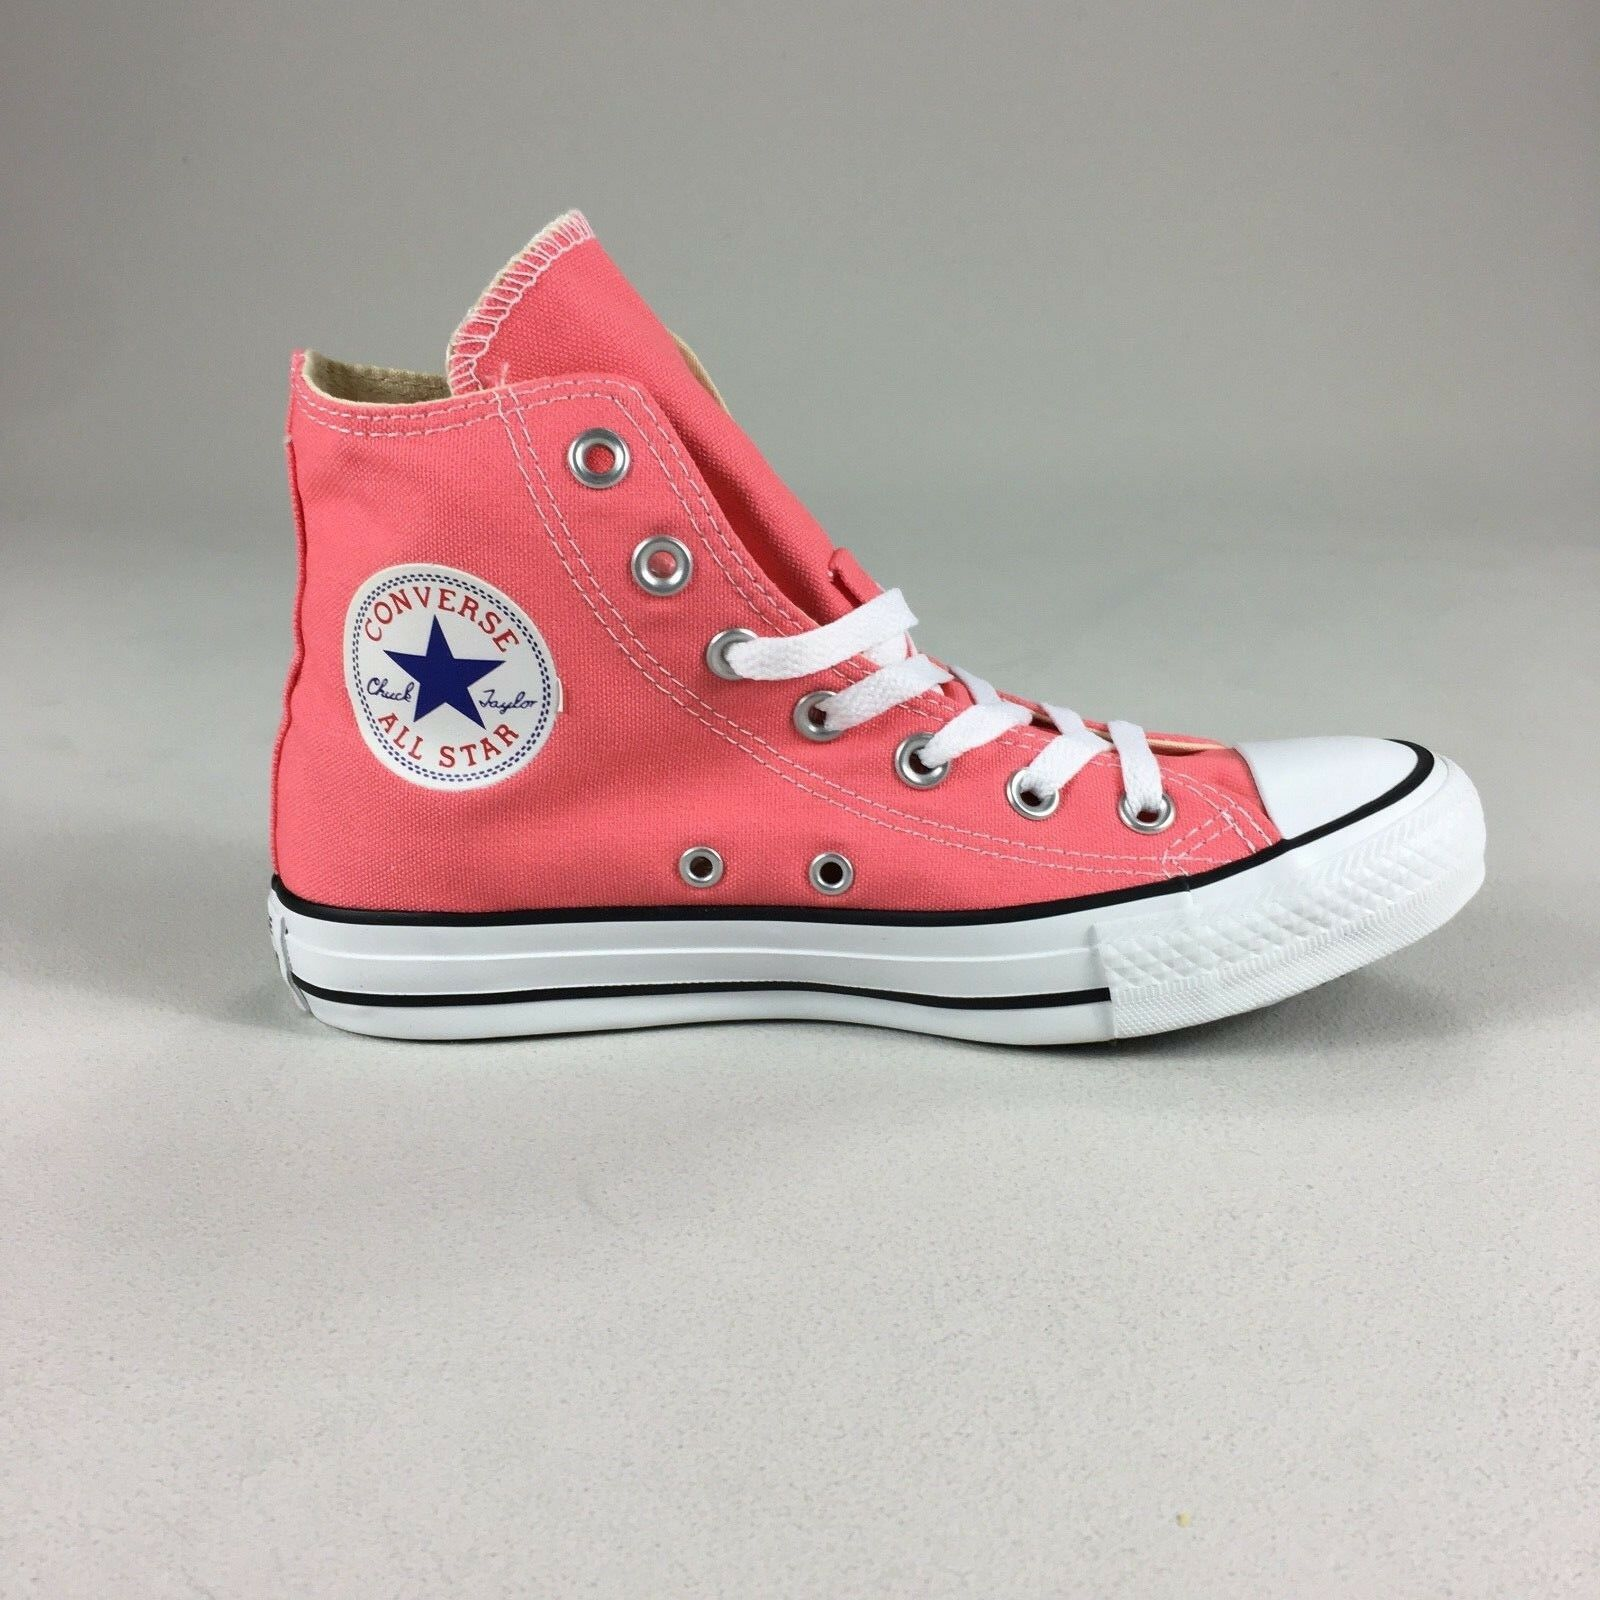 Converse CT Hi Carnival Trainers New in box Carnival Pink UK Größe 3,4,5,6,7